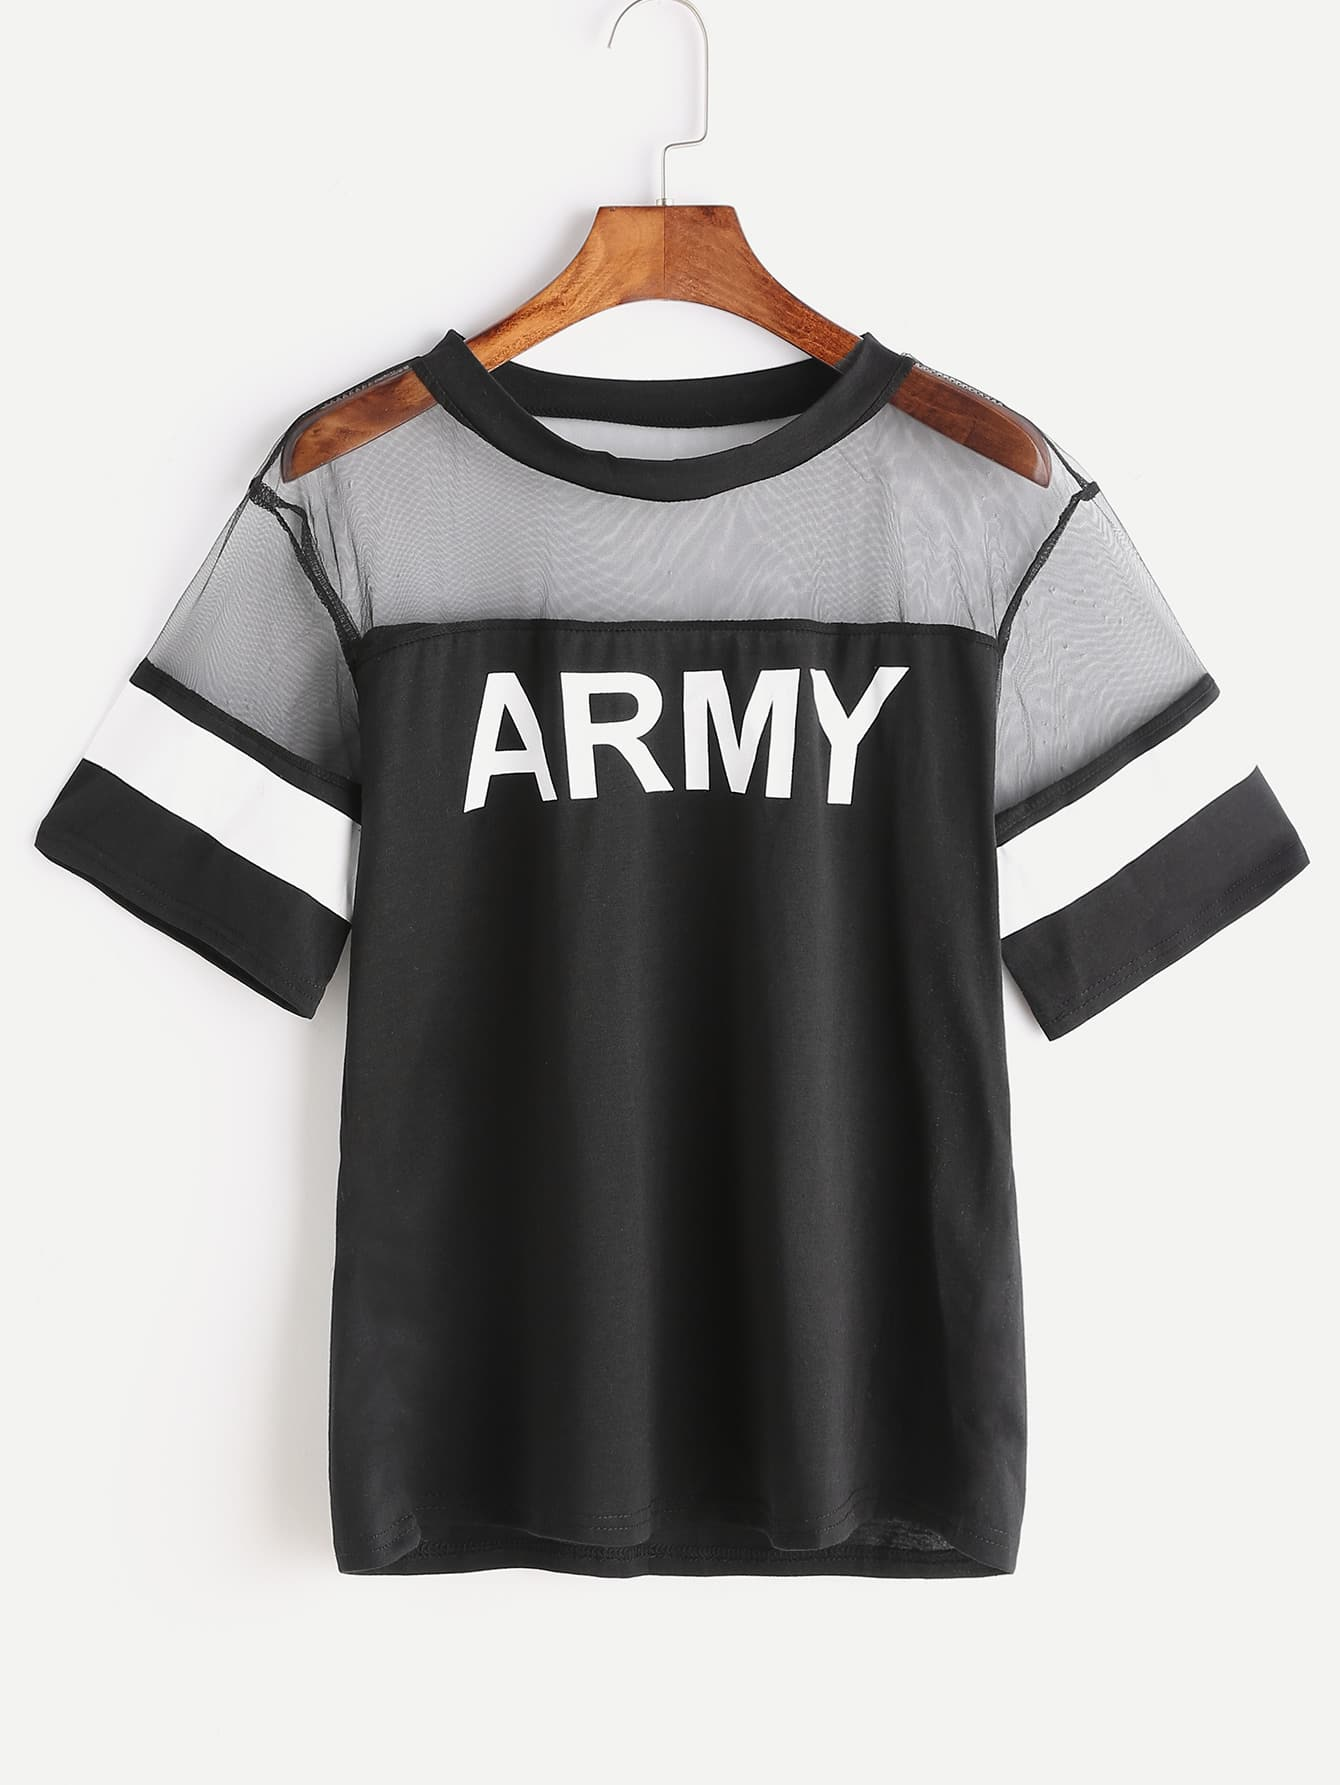 Army Print Contrast Mesh Tee 1 electric solenoid valve 220 volt water diesel normally closed ac220v